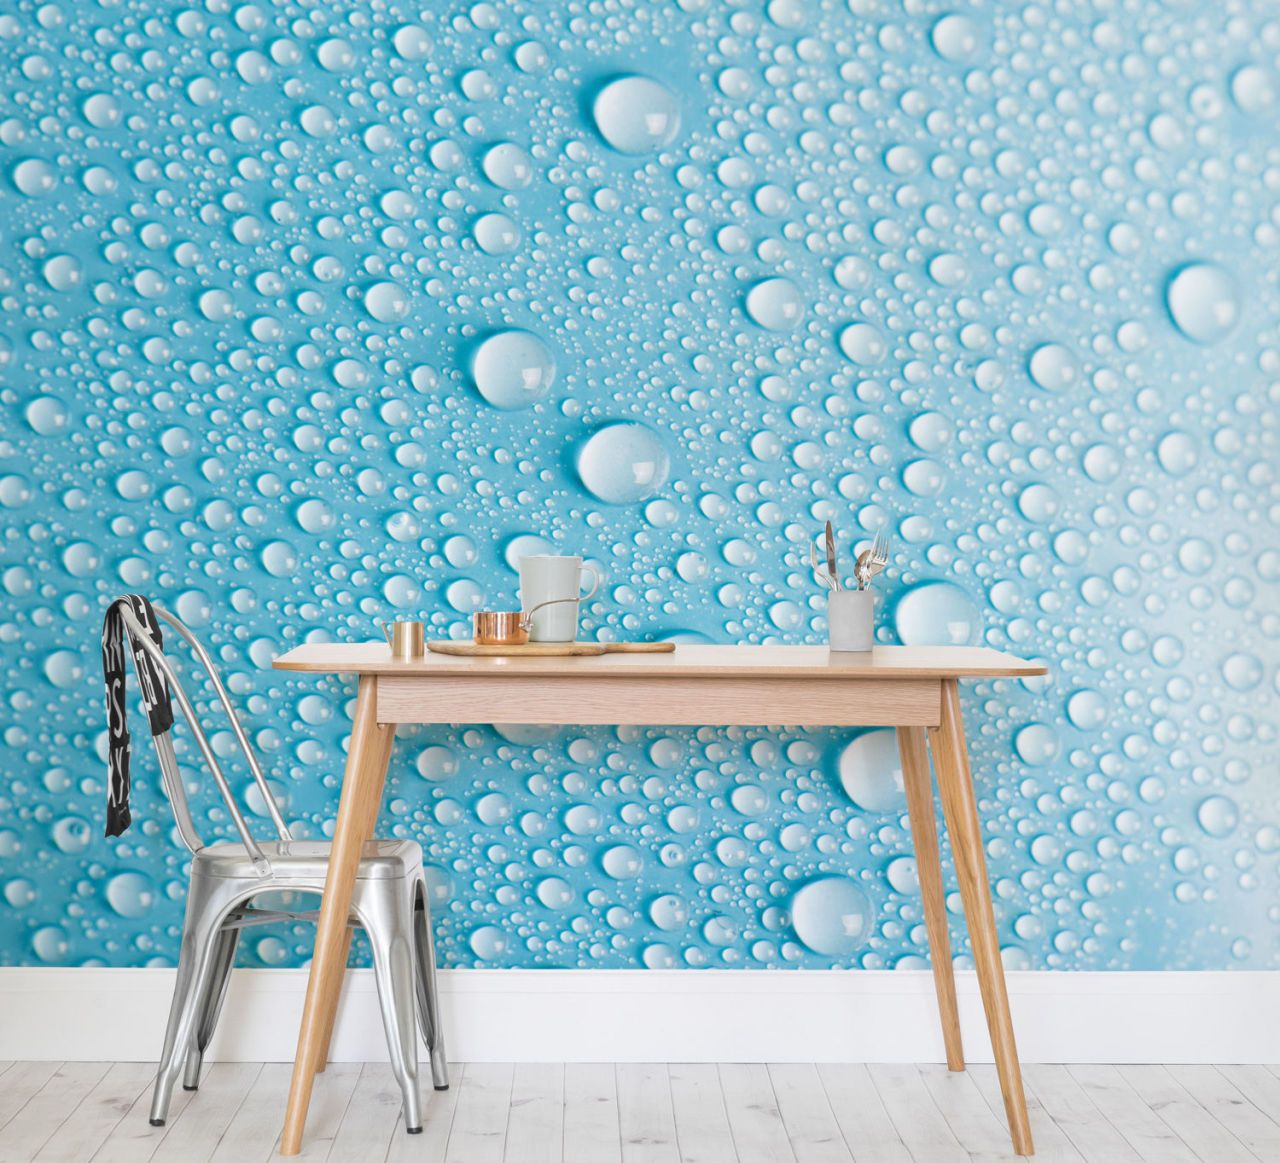 13 incredible wallpapers and wall muralswater drops wall mural wallpaper in a living room setting with table and chairs